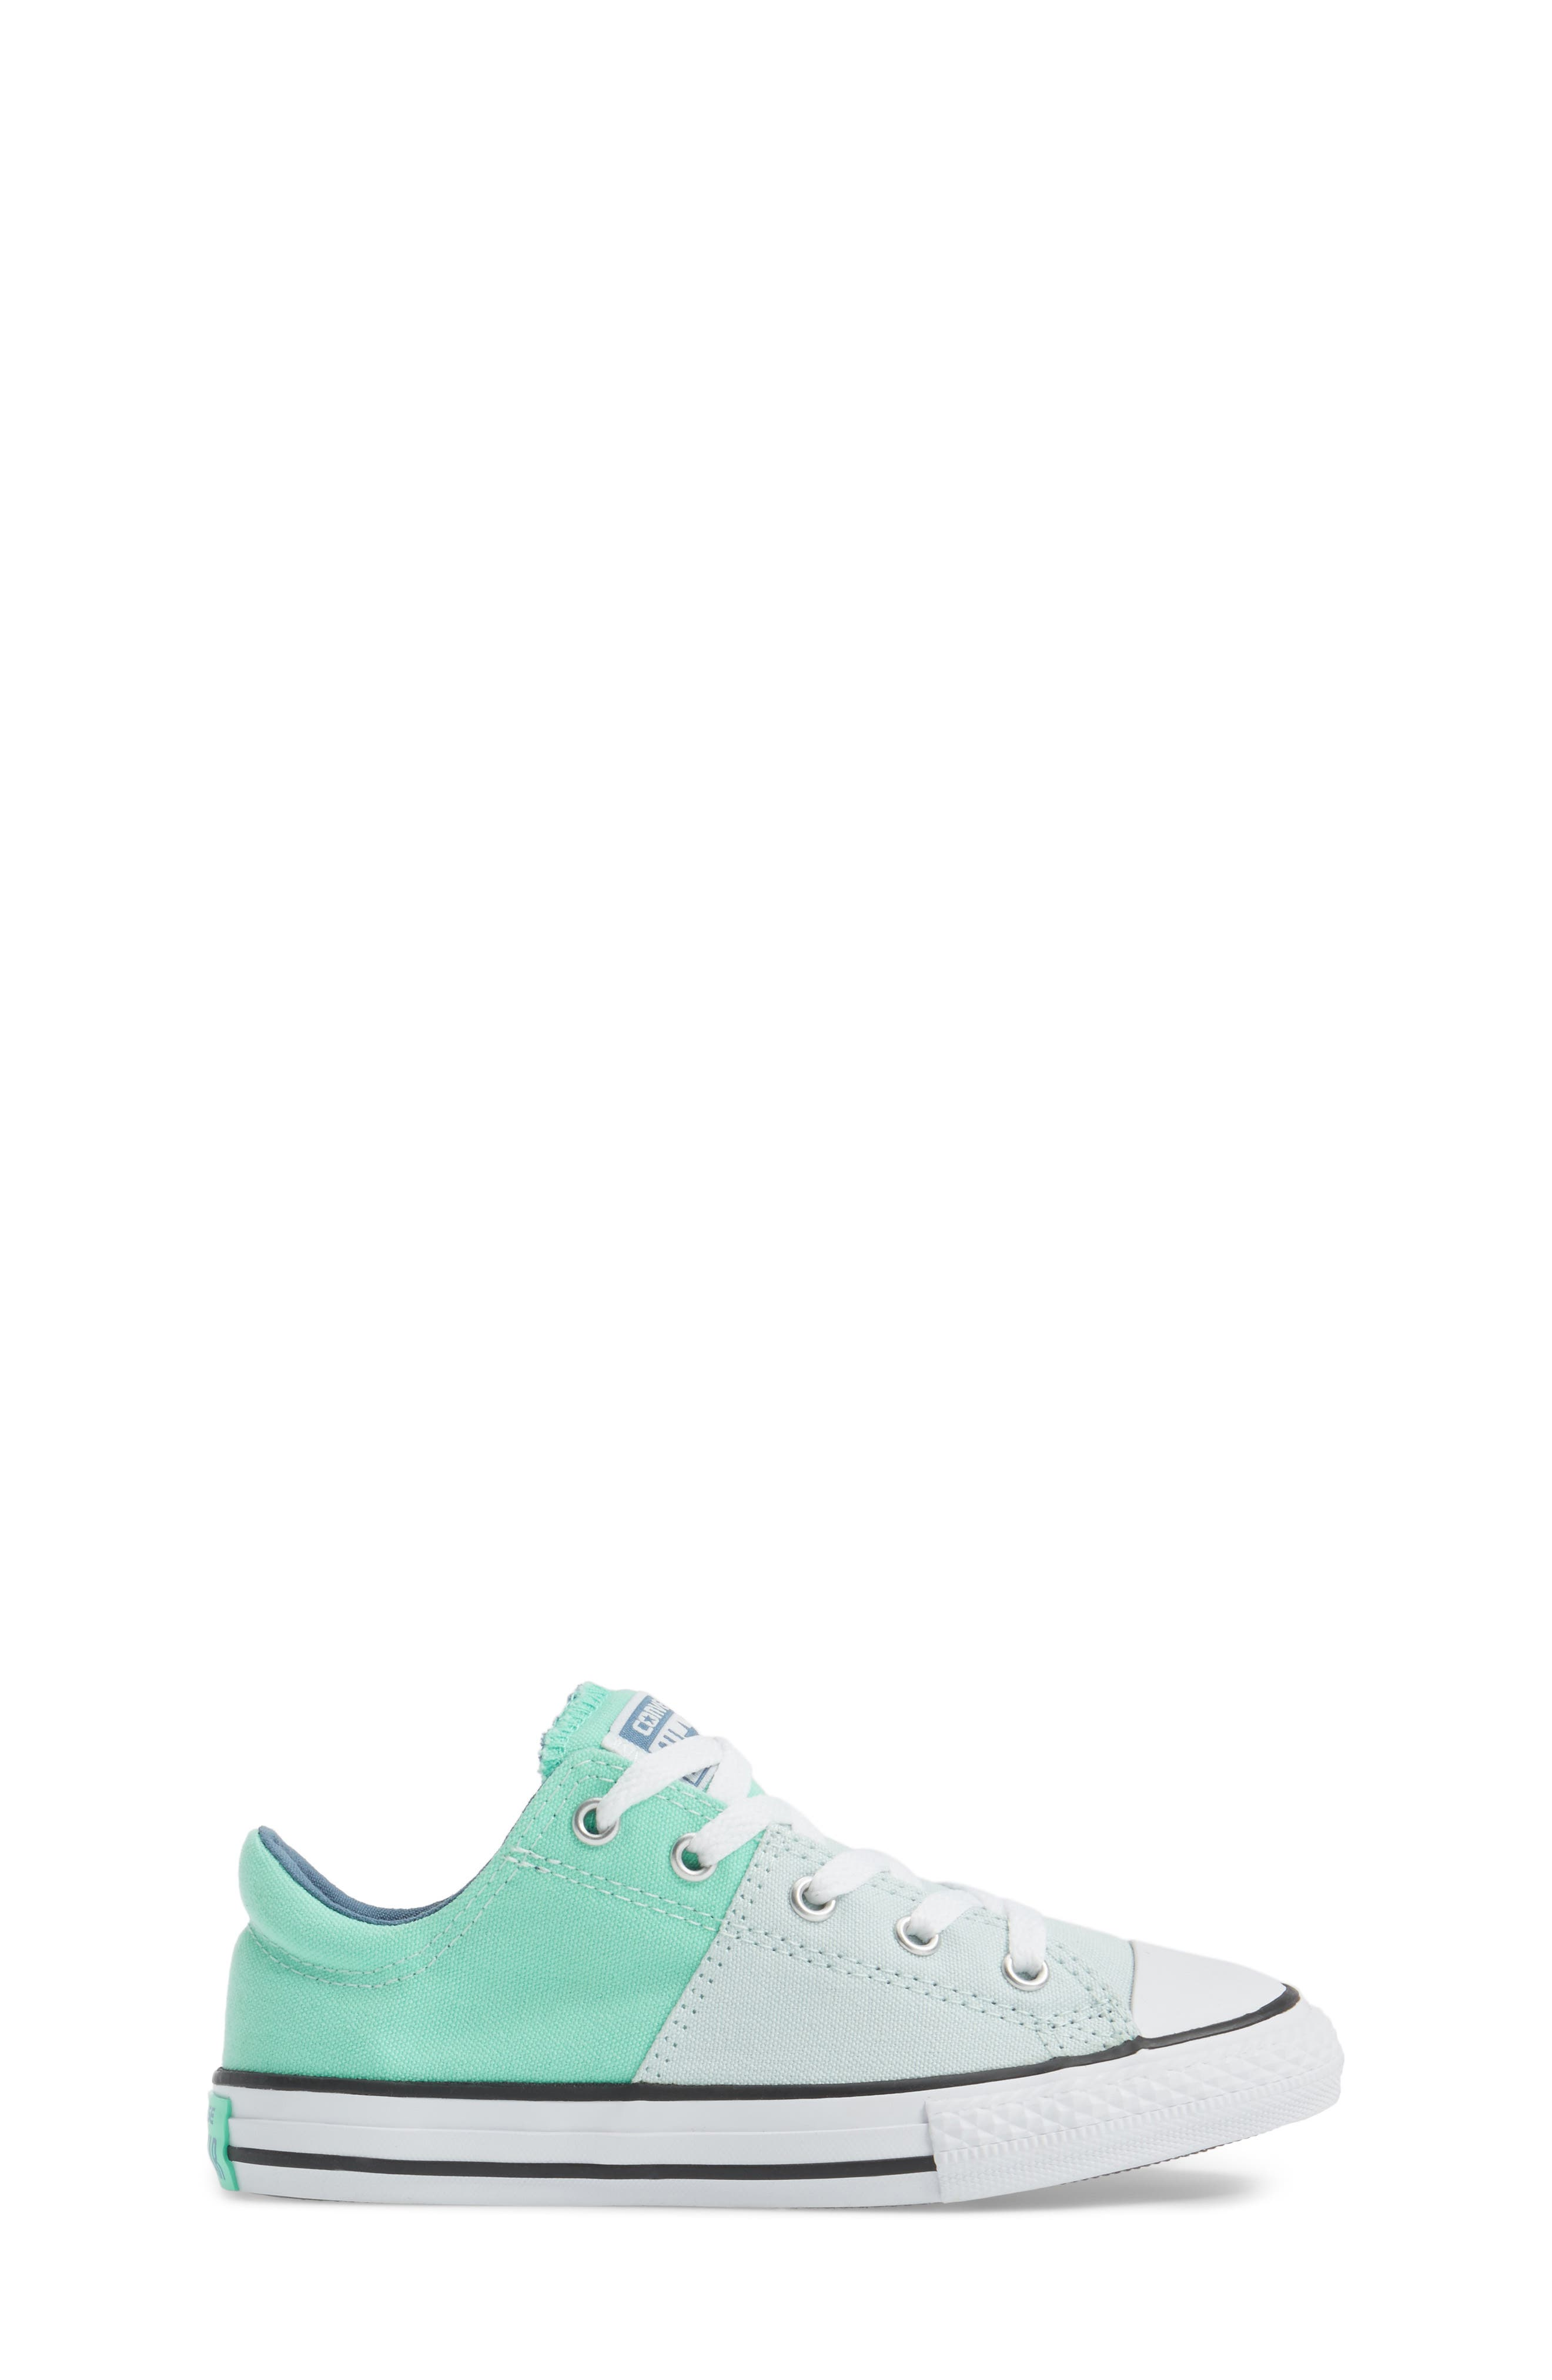 Chuck Taylor<sup>®</sup> All Star<sup>®</sup> Madison Low Top Sneaker,                             Alternate thumbnail 17, color,